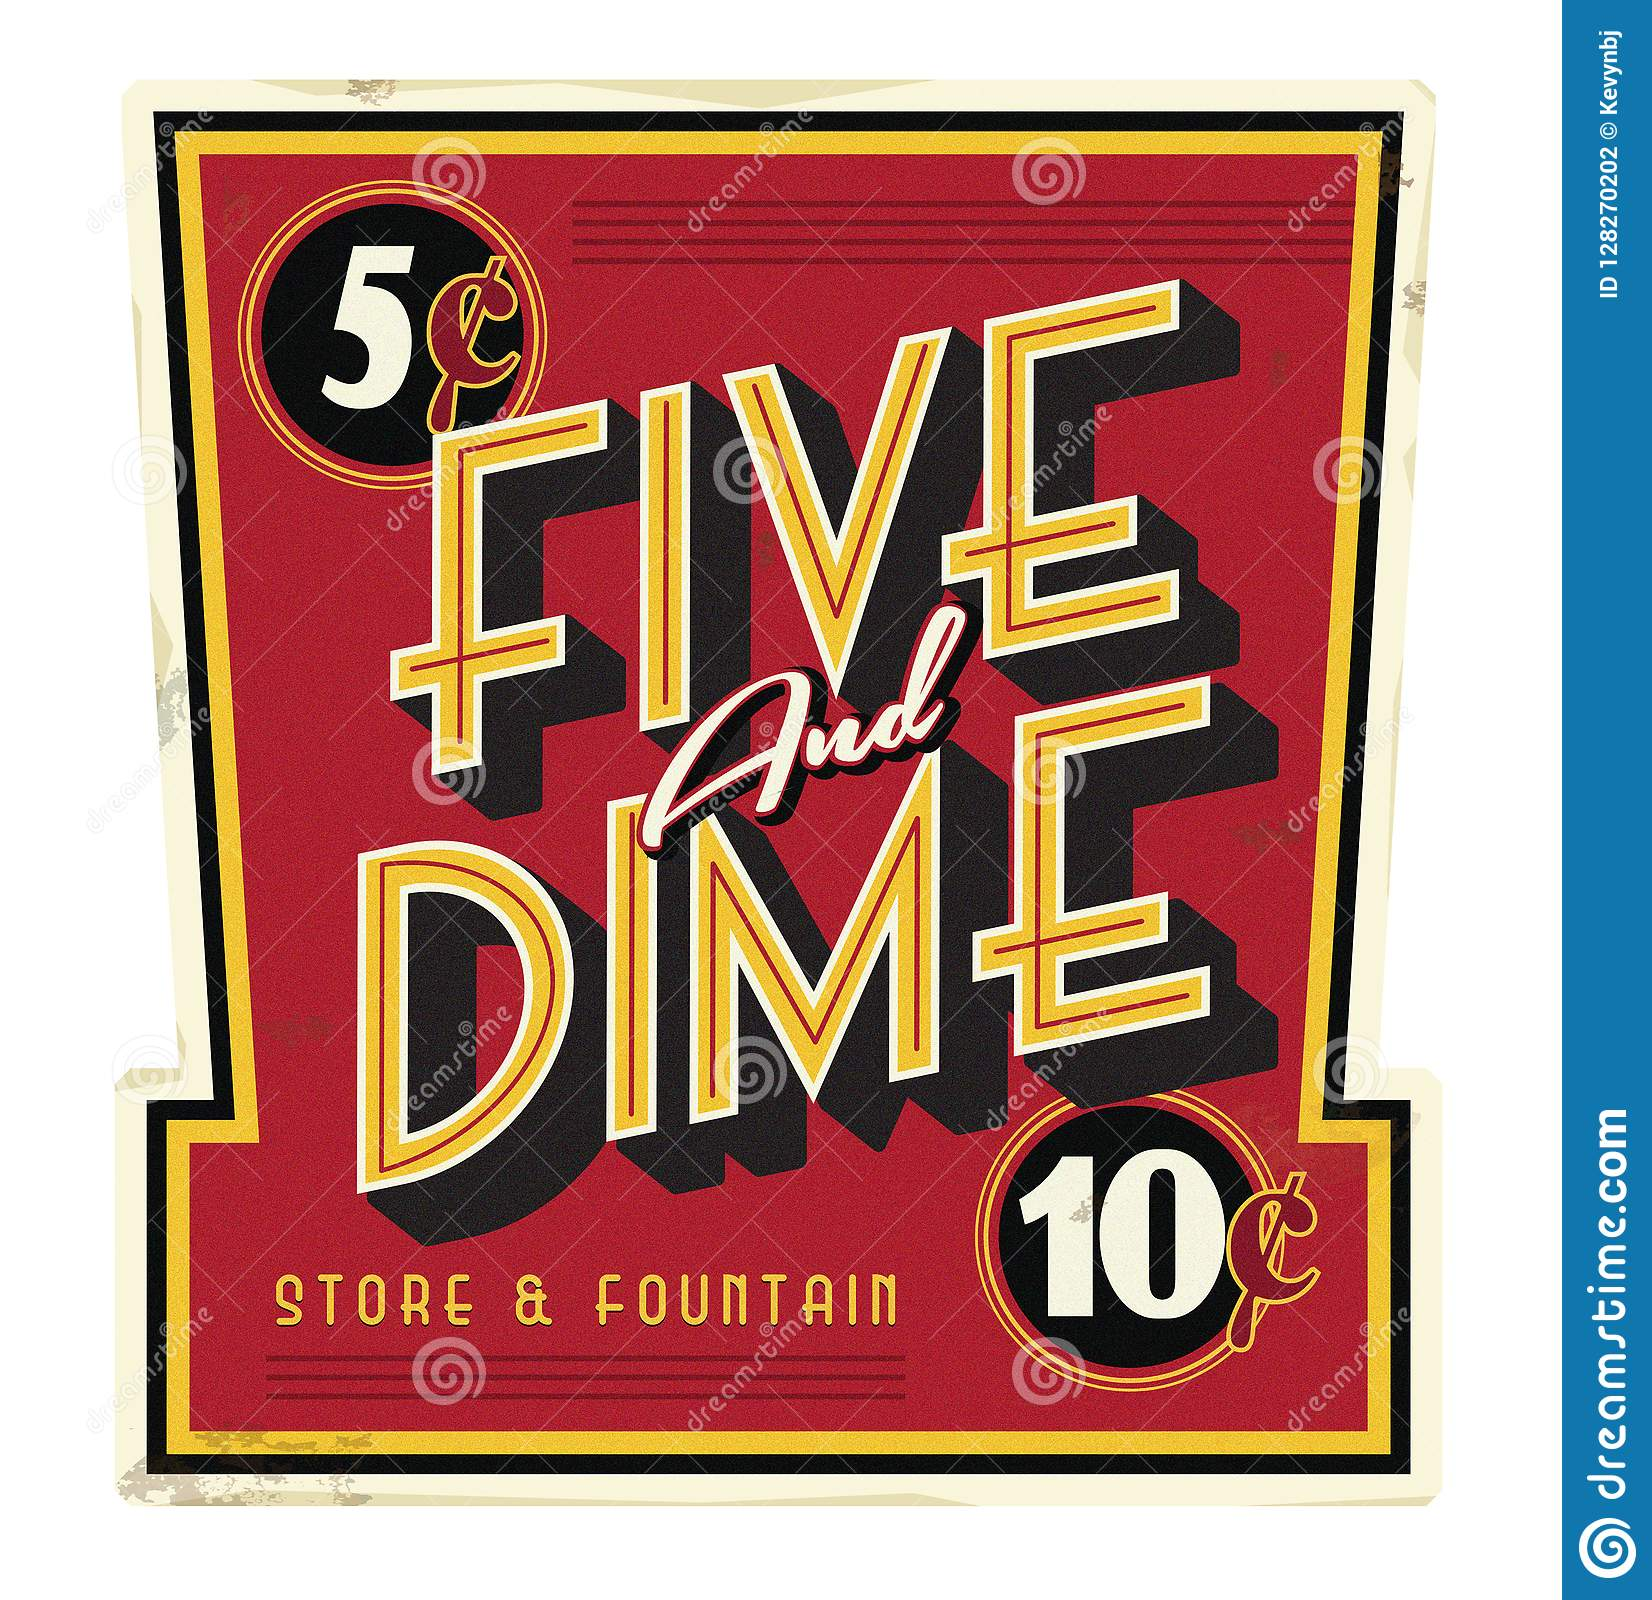 Five and Dime General Store Main Street Vintage Sign